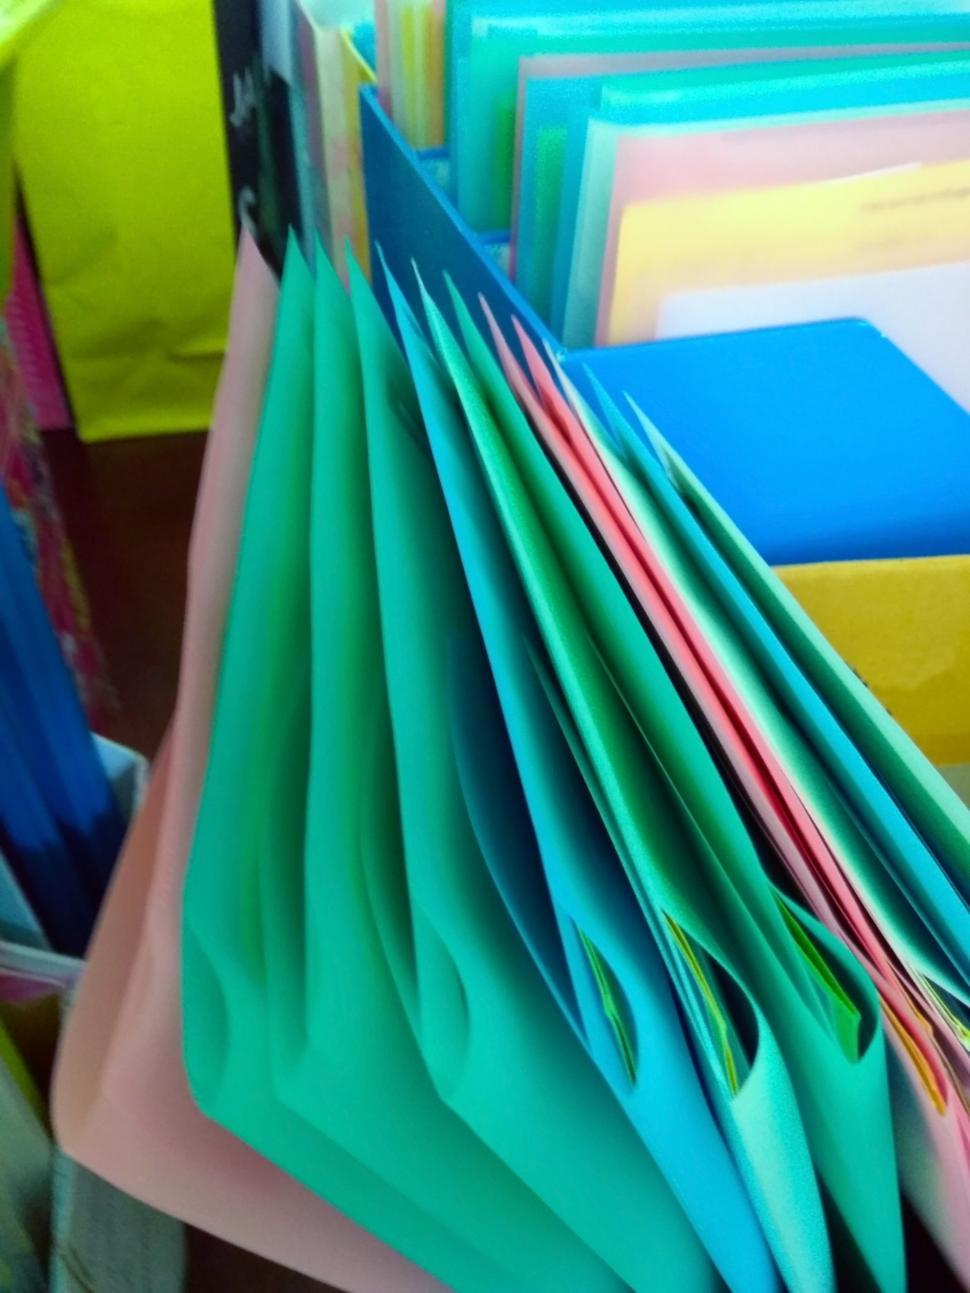 Download Free Stock HD Photo of Colorful files in an office  Online